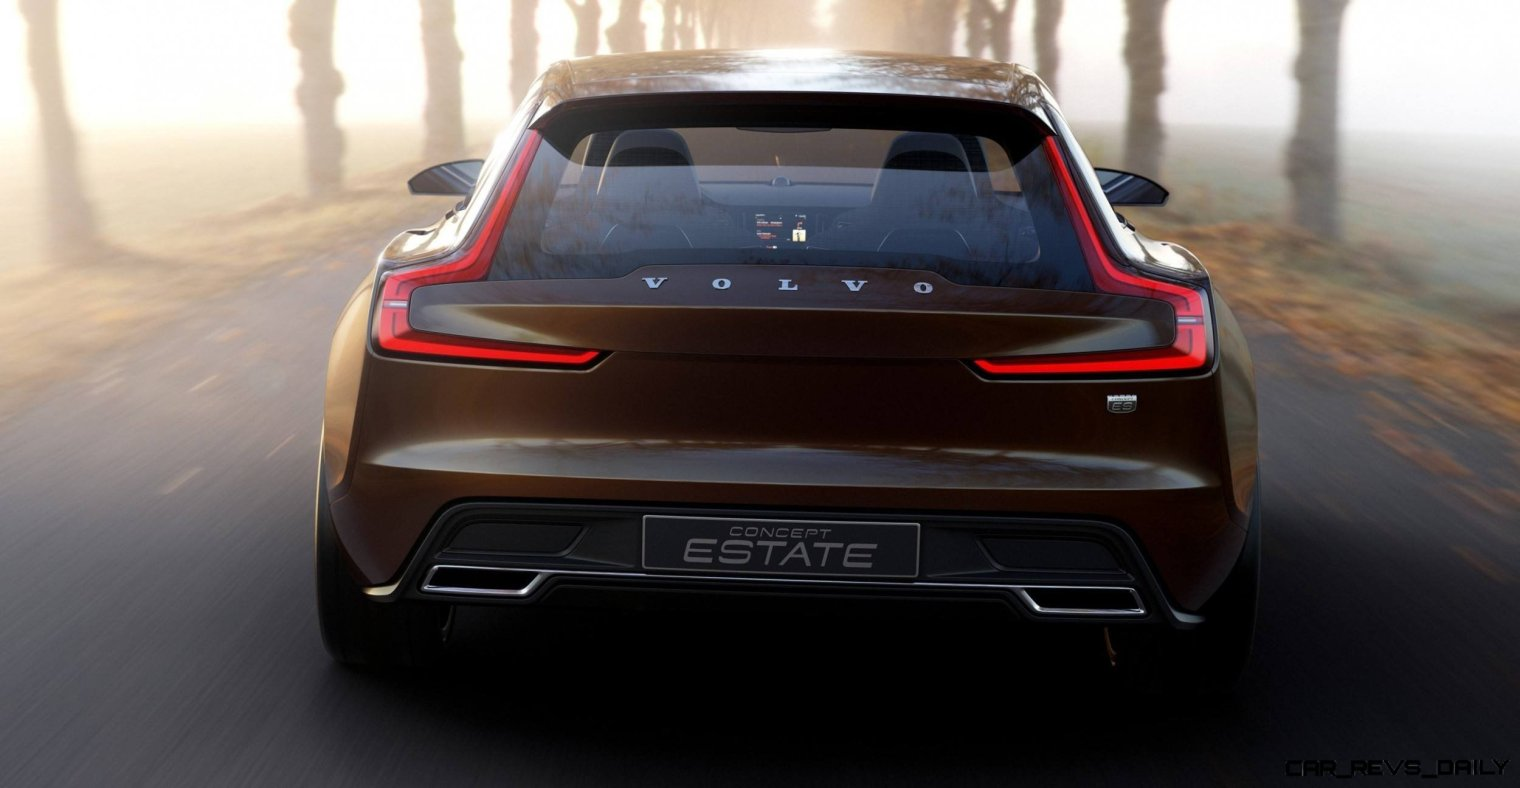 Concept Estate Confirms It! Volvo's New Design Lead Th. Ingenlath Should Be Sweden's Man of the Year 4